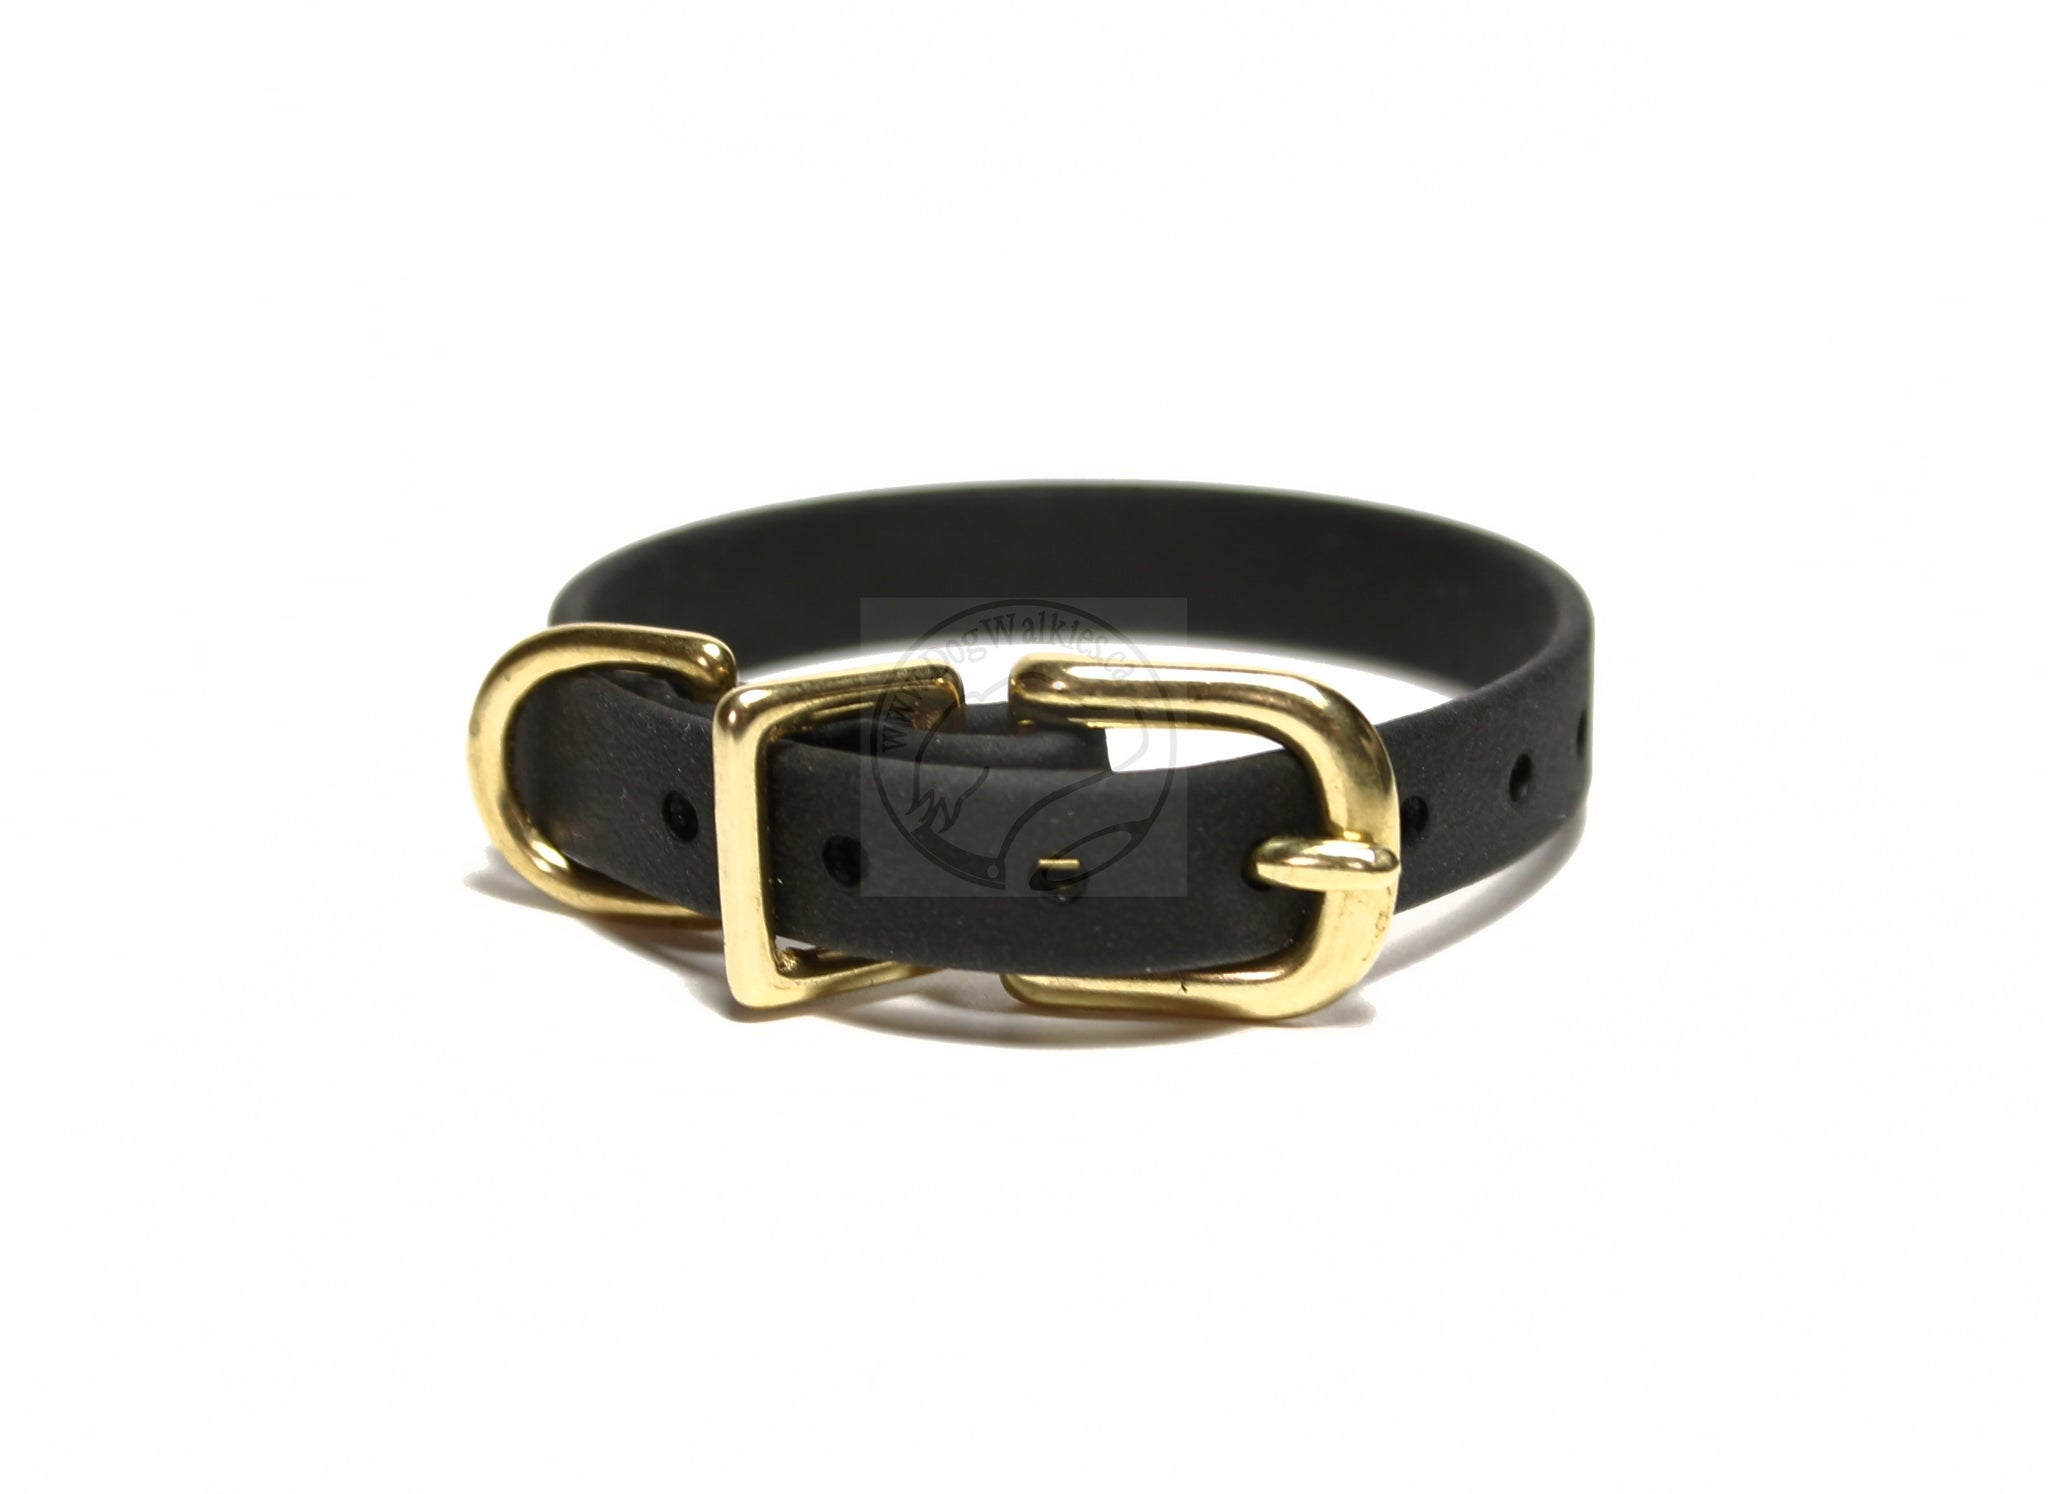 "Jet Black Biothane Small Dog Collar - 1/2"" (12mm) wide"